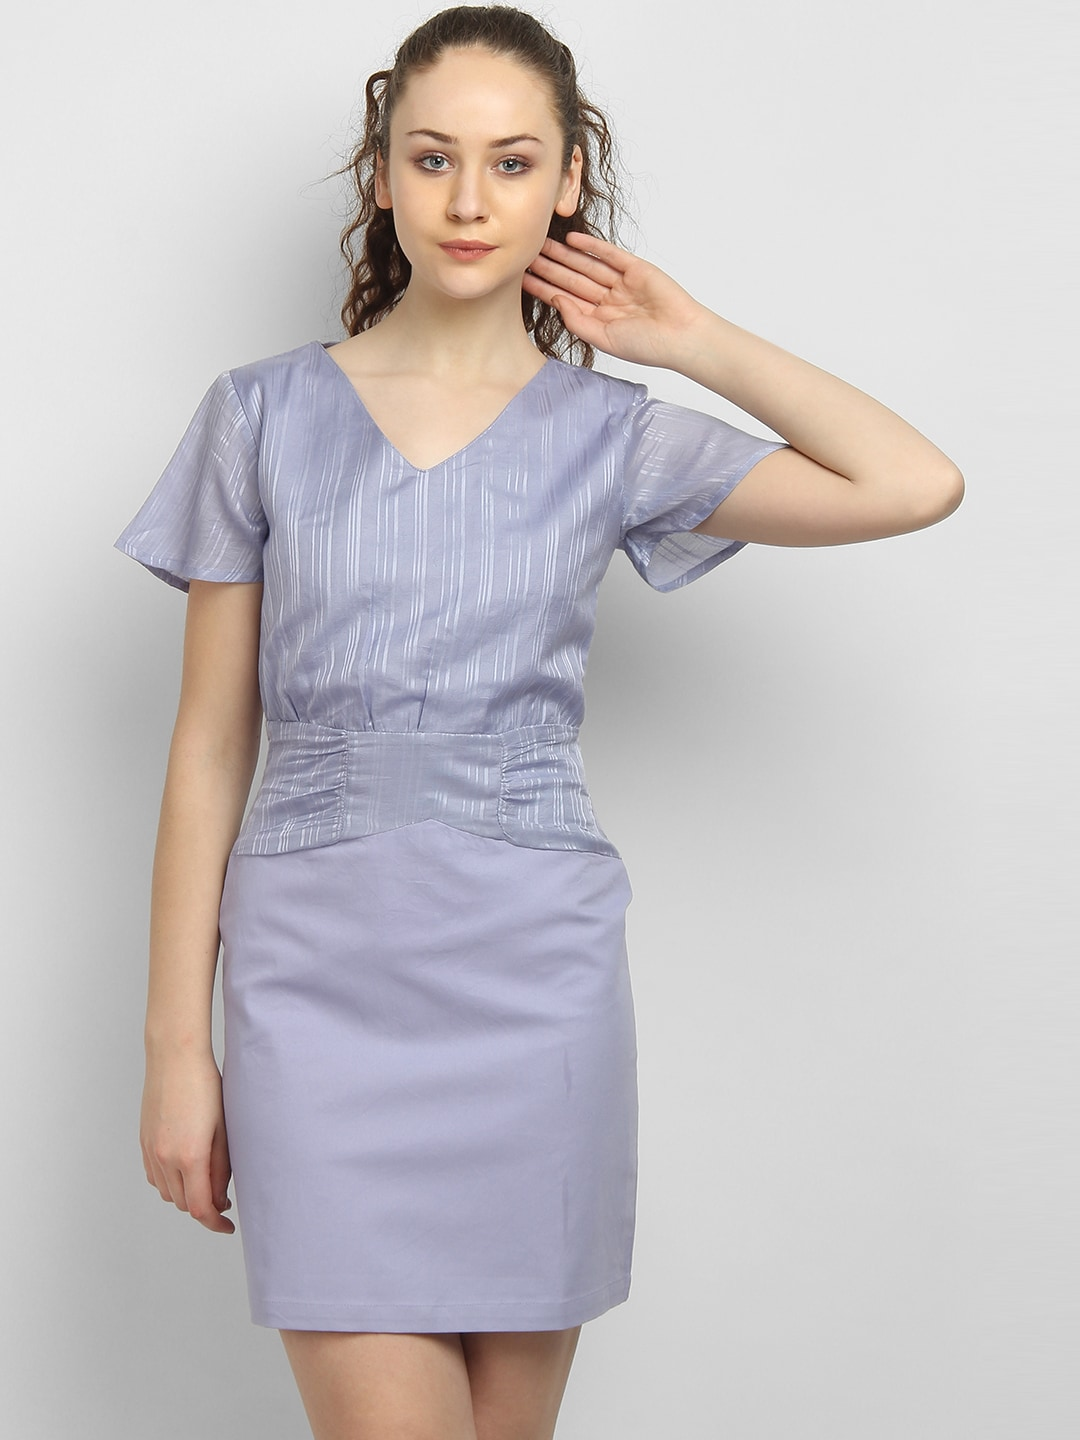 38649e24ef9 Lavender Dress - Buy Lavender Dresses for Women Online